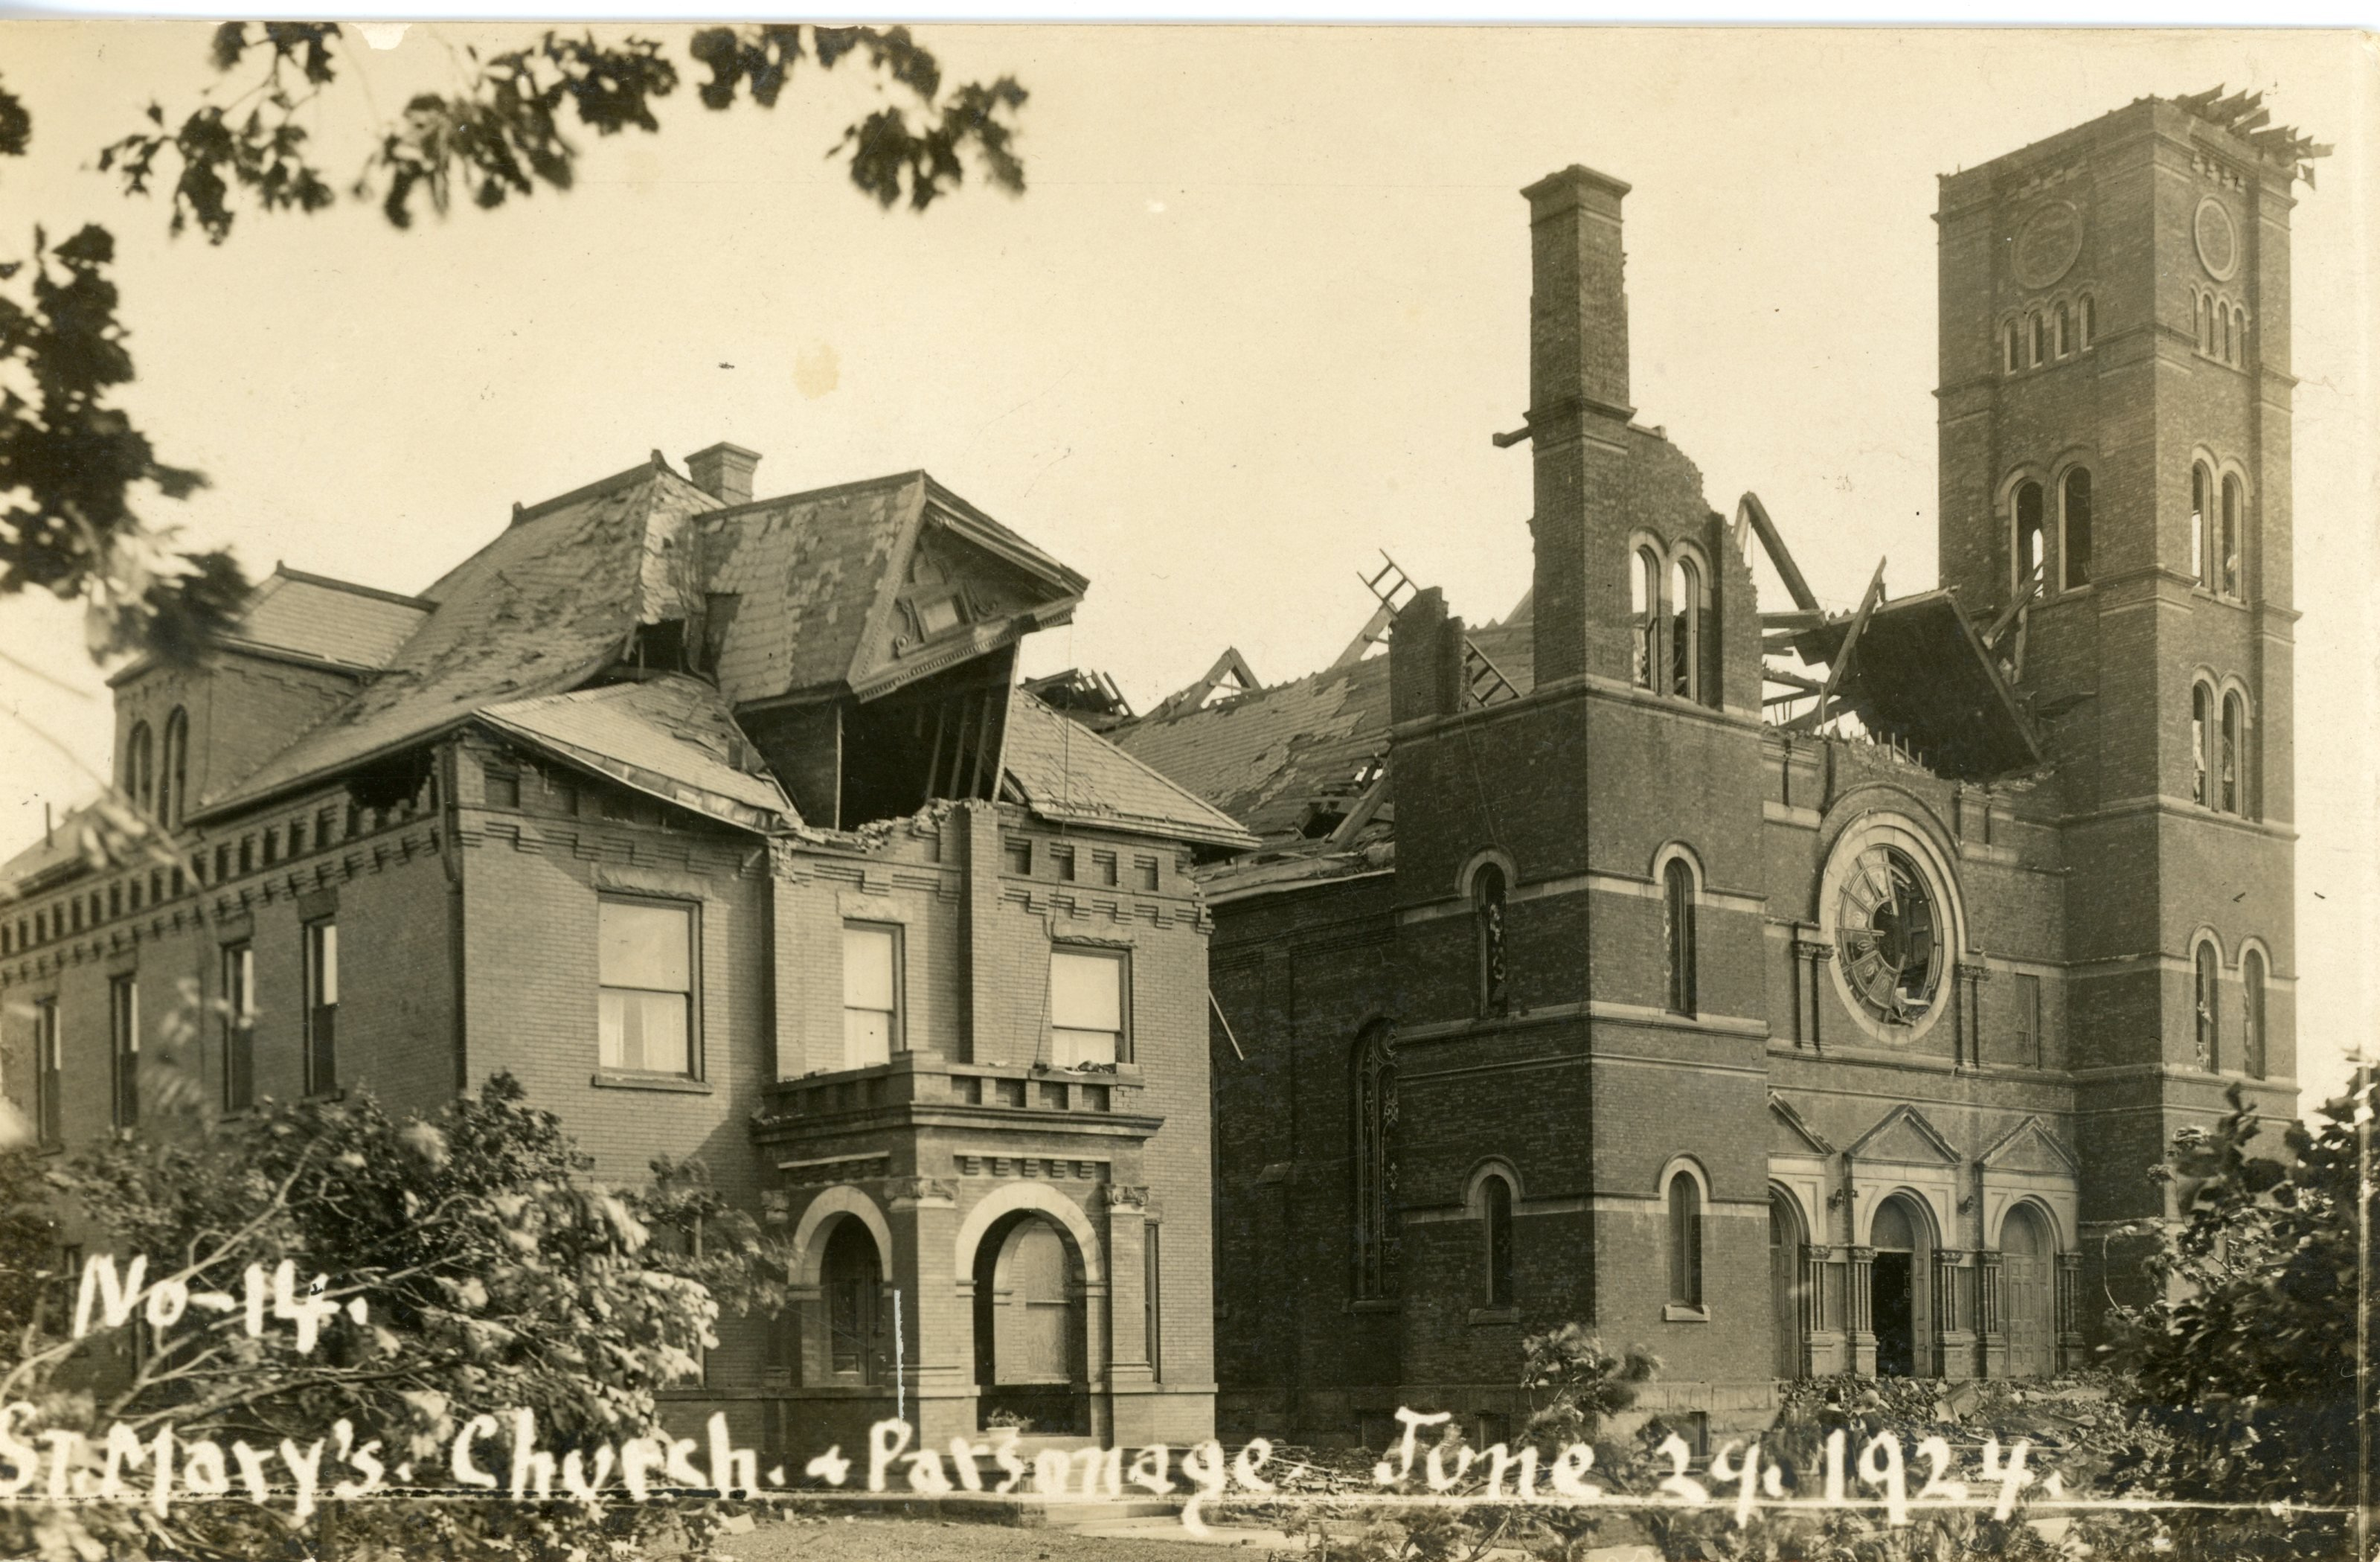 St. Mary's Church after the Lorain Tornado in 1924.